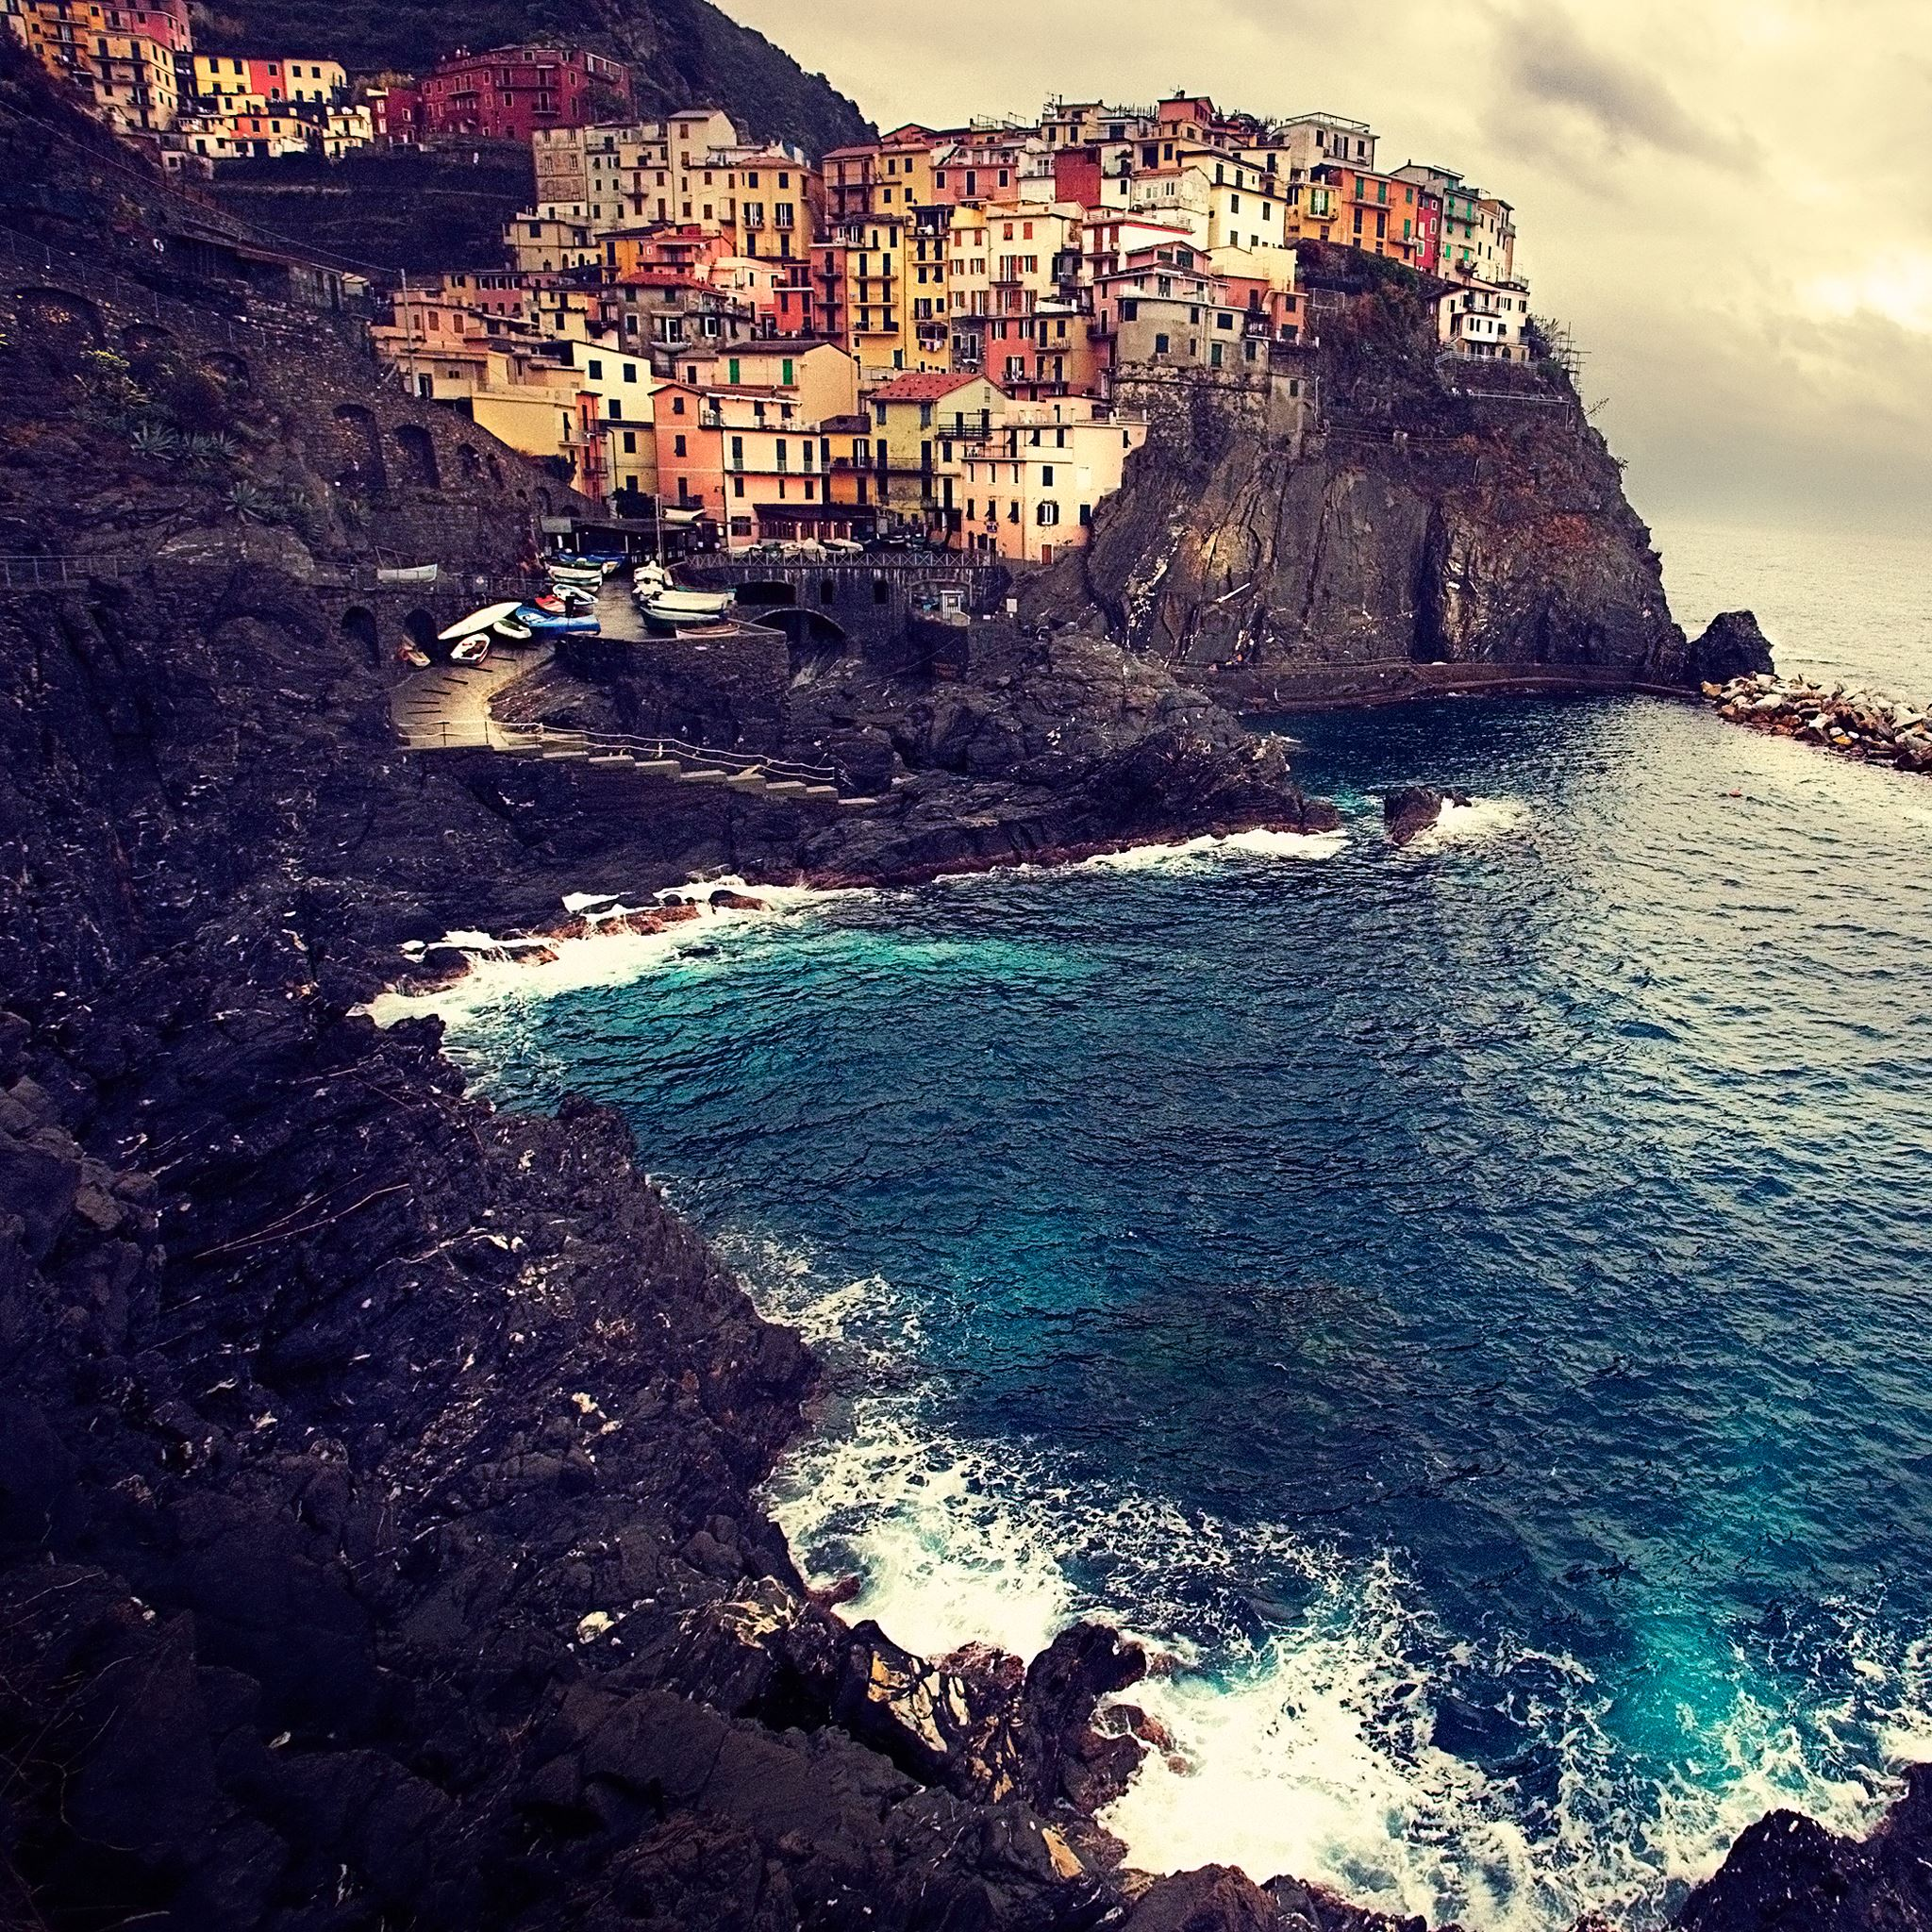 Manarola Cinque Terre iPad Air wallpaper